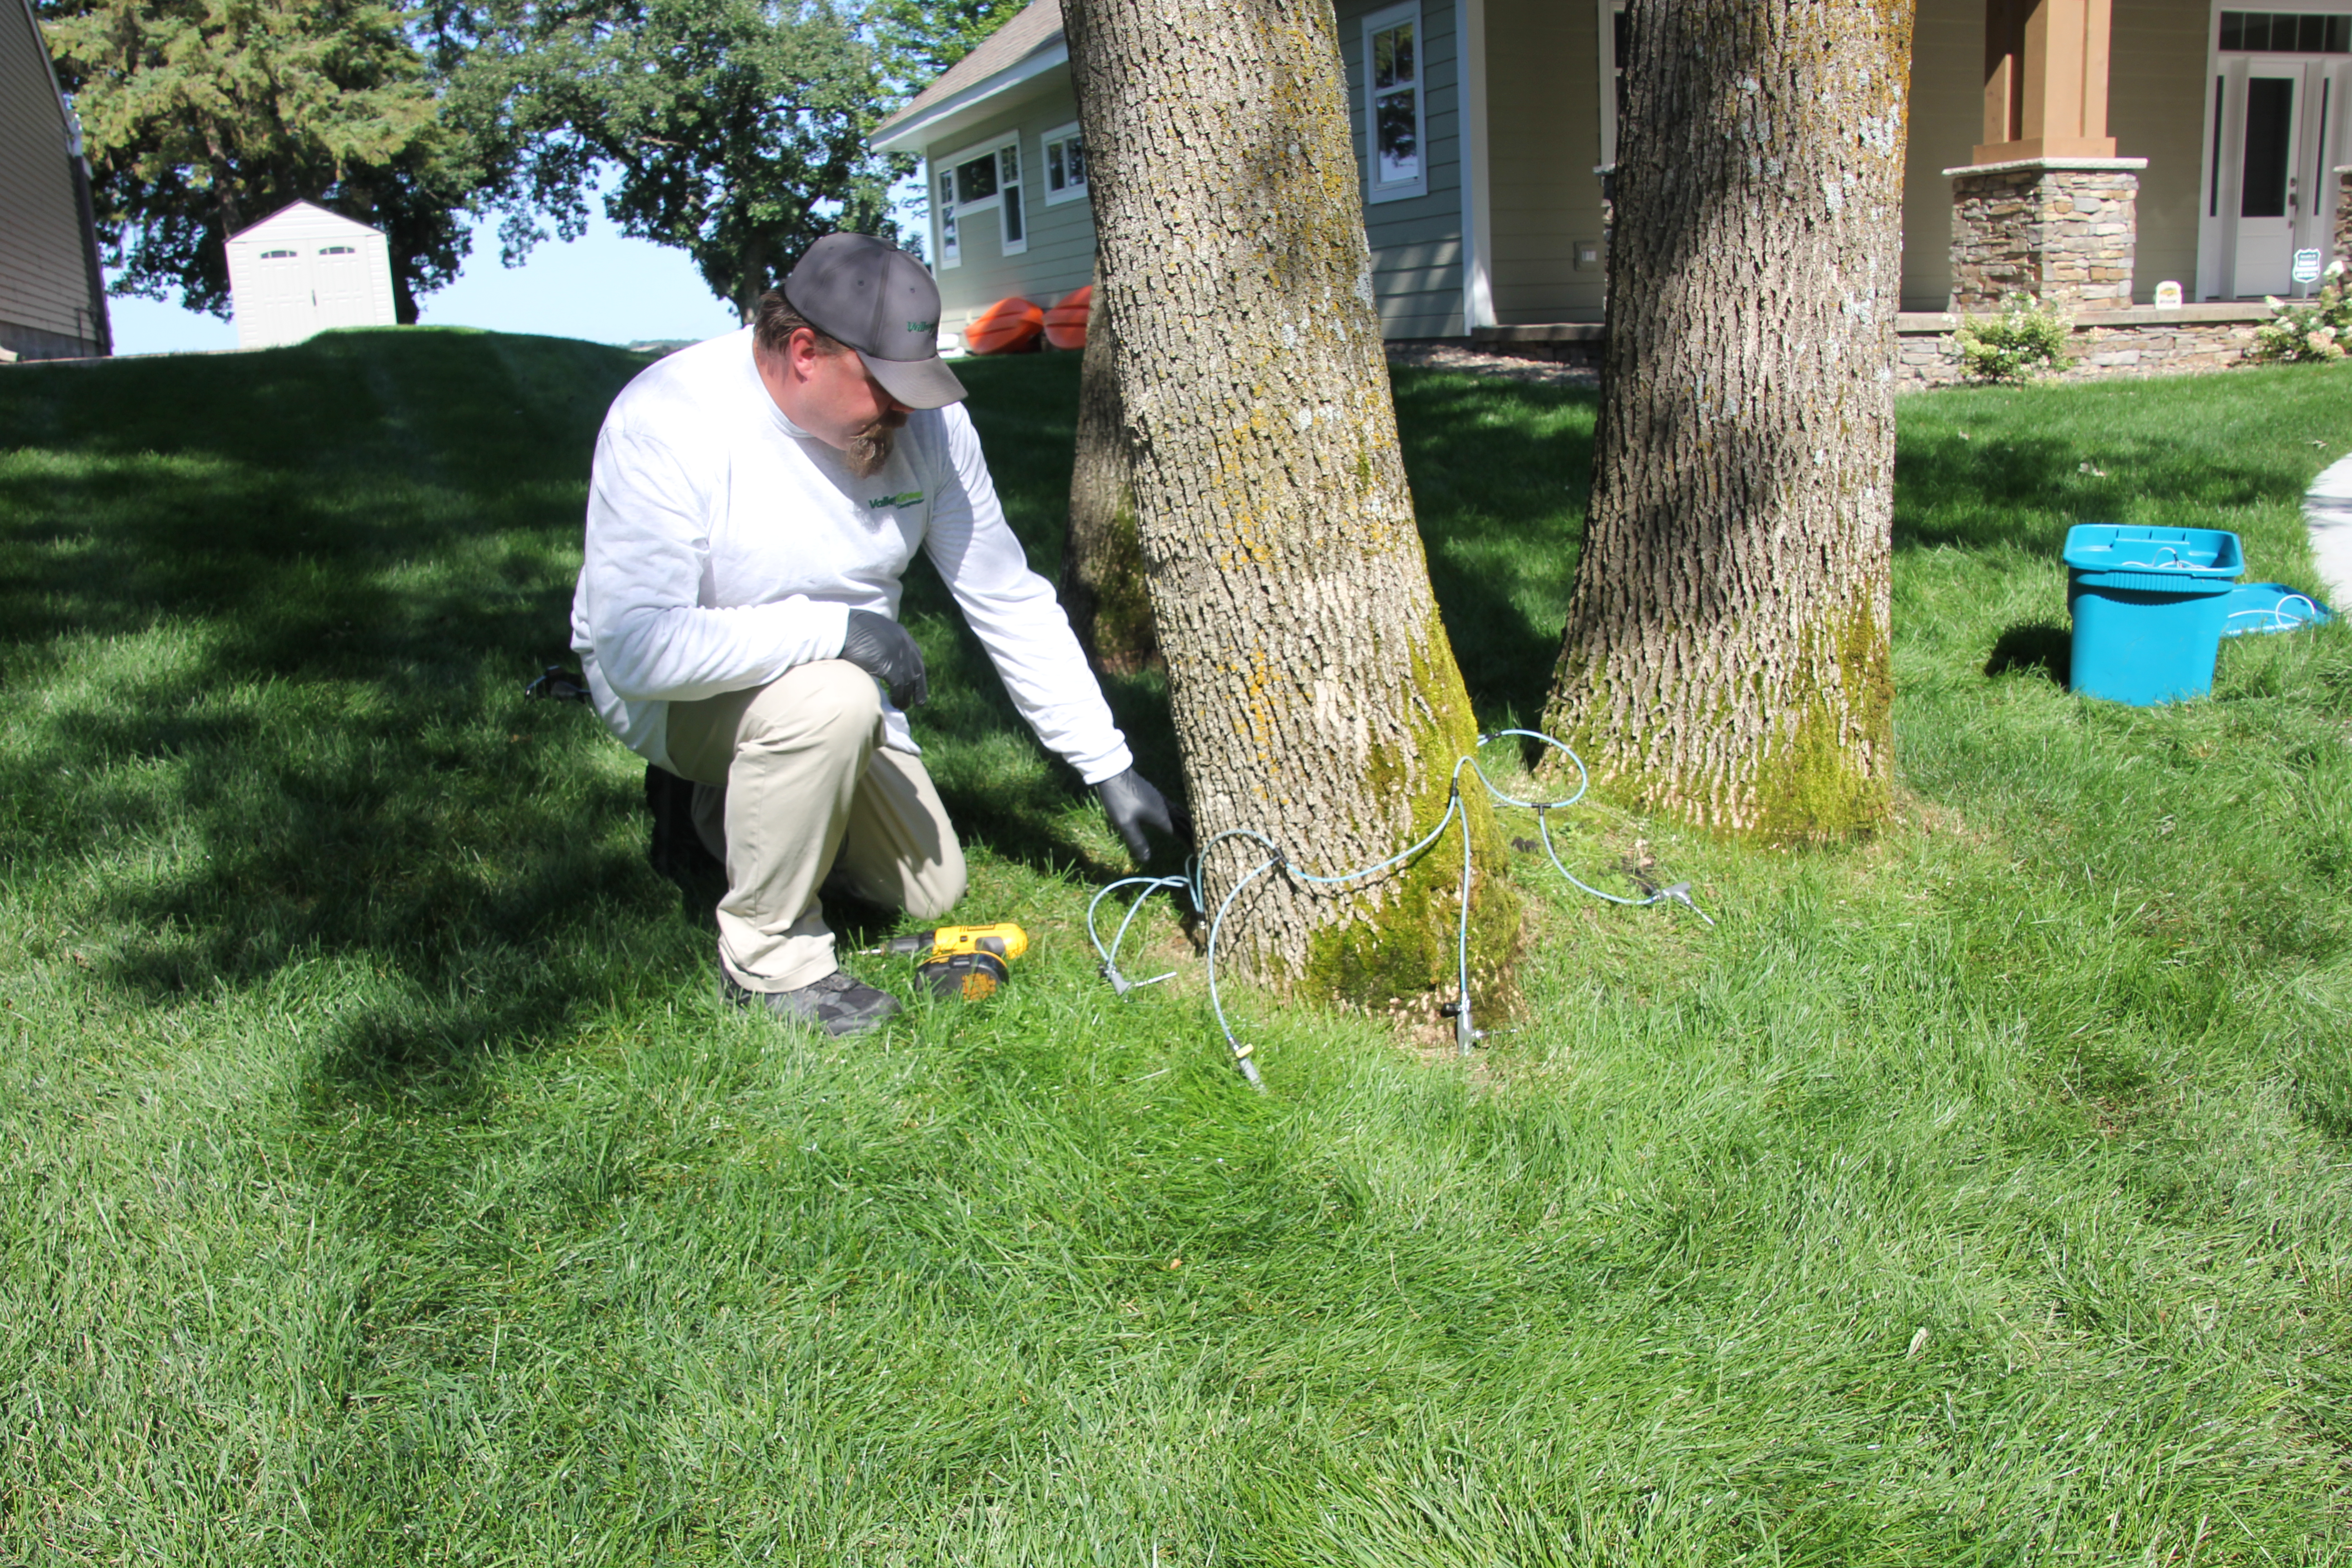 Valley Green employee Brad performing a micro-infusion method of Emerald Ash Borer treatment on an ash tree in Sartell, Minnesota.